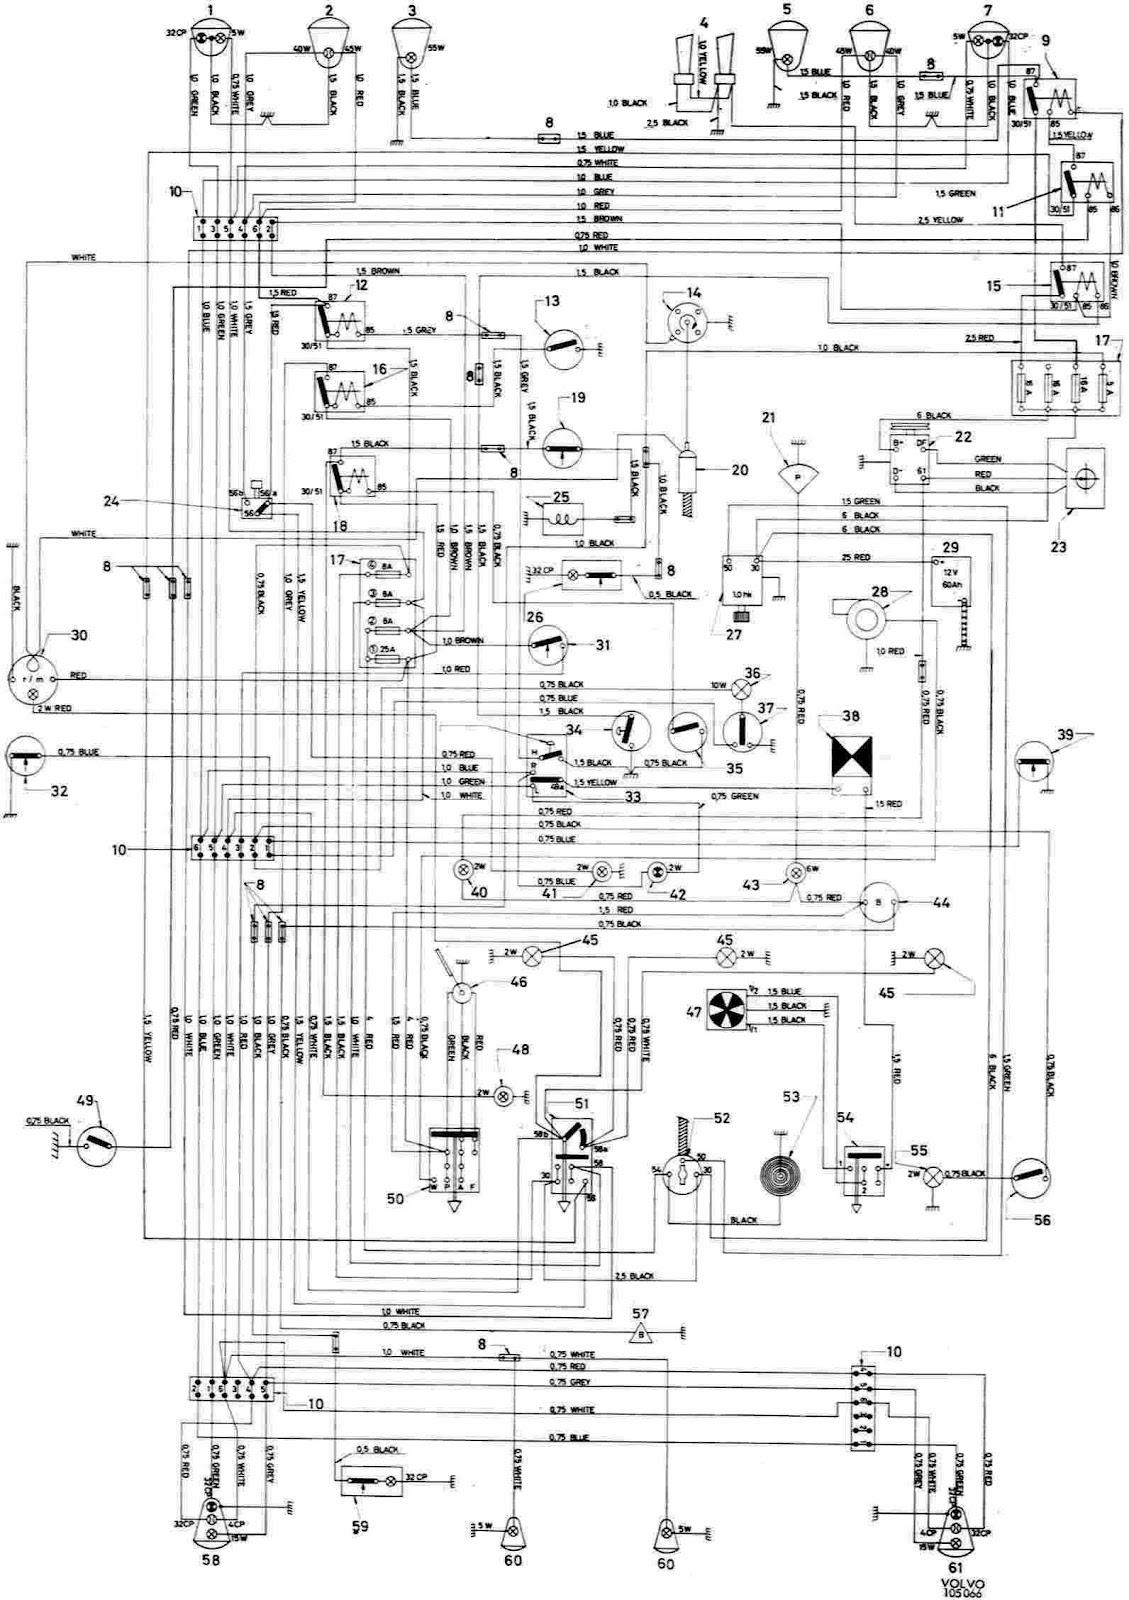 Volvo+123+GT+Complete+Wiring+Diagram hu 613 wiring diagram boat wiring diagram \u2022 wiring diagrams j volvo truck wiring diagrams at gsmx.co